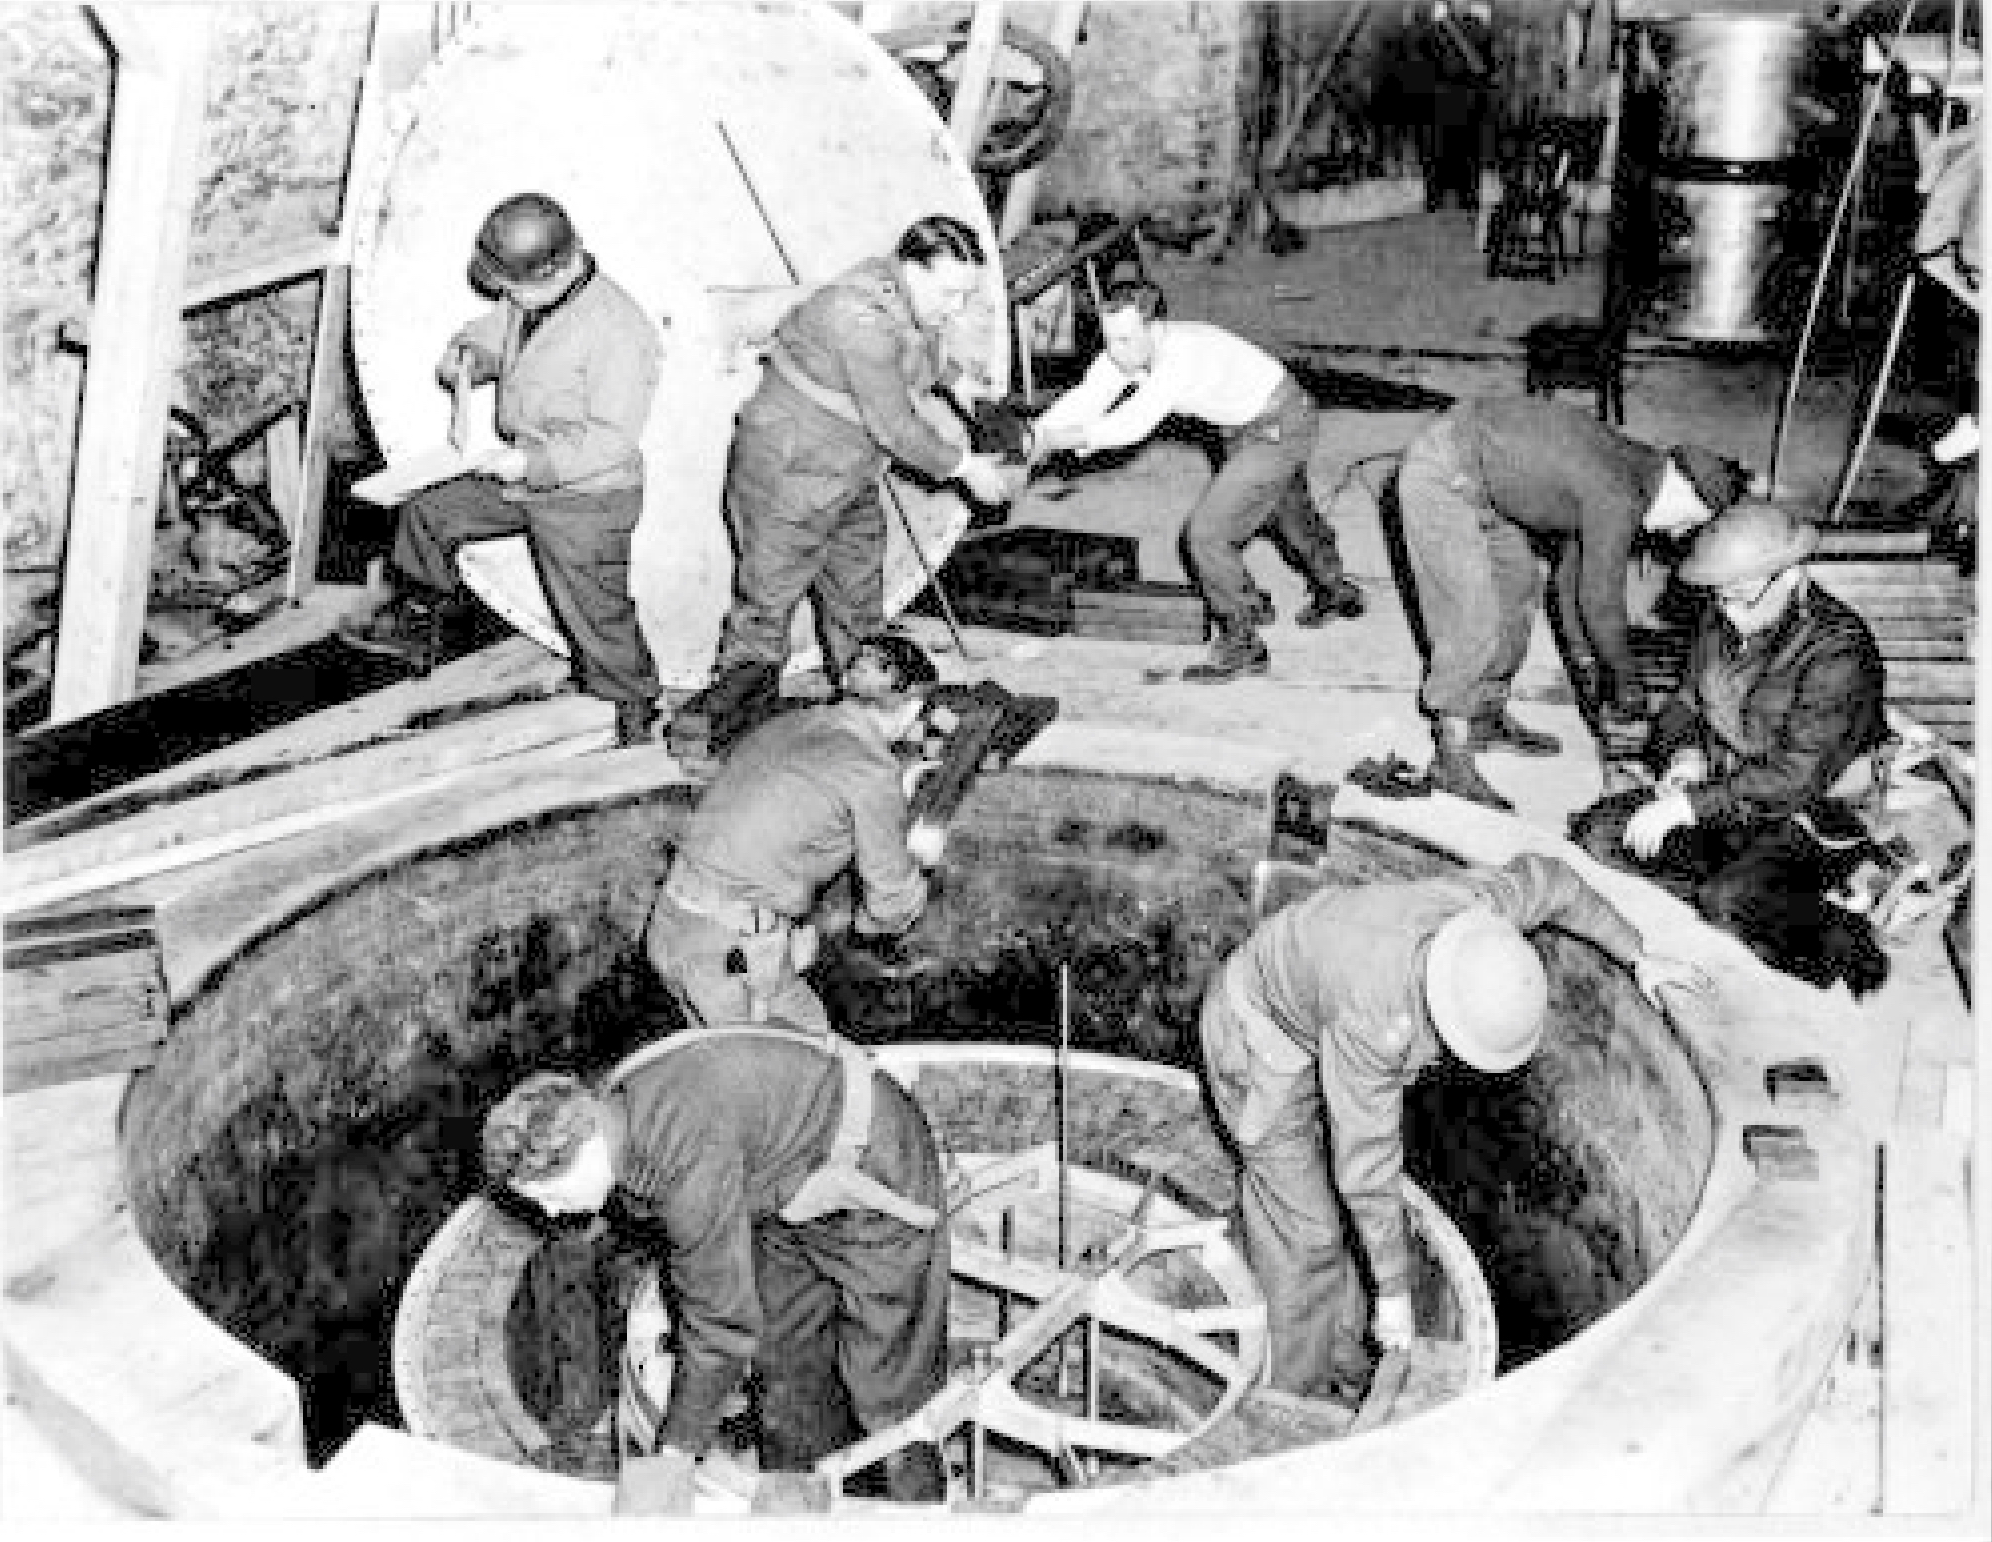 Soldiers and workmen, some wearing steel helmet, clamber over what looks like a giant manhole.